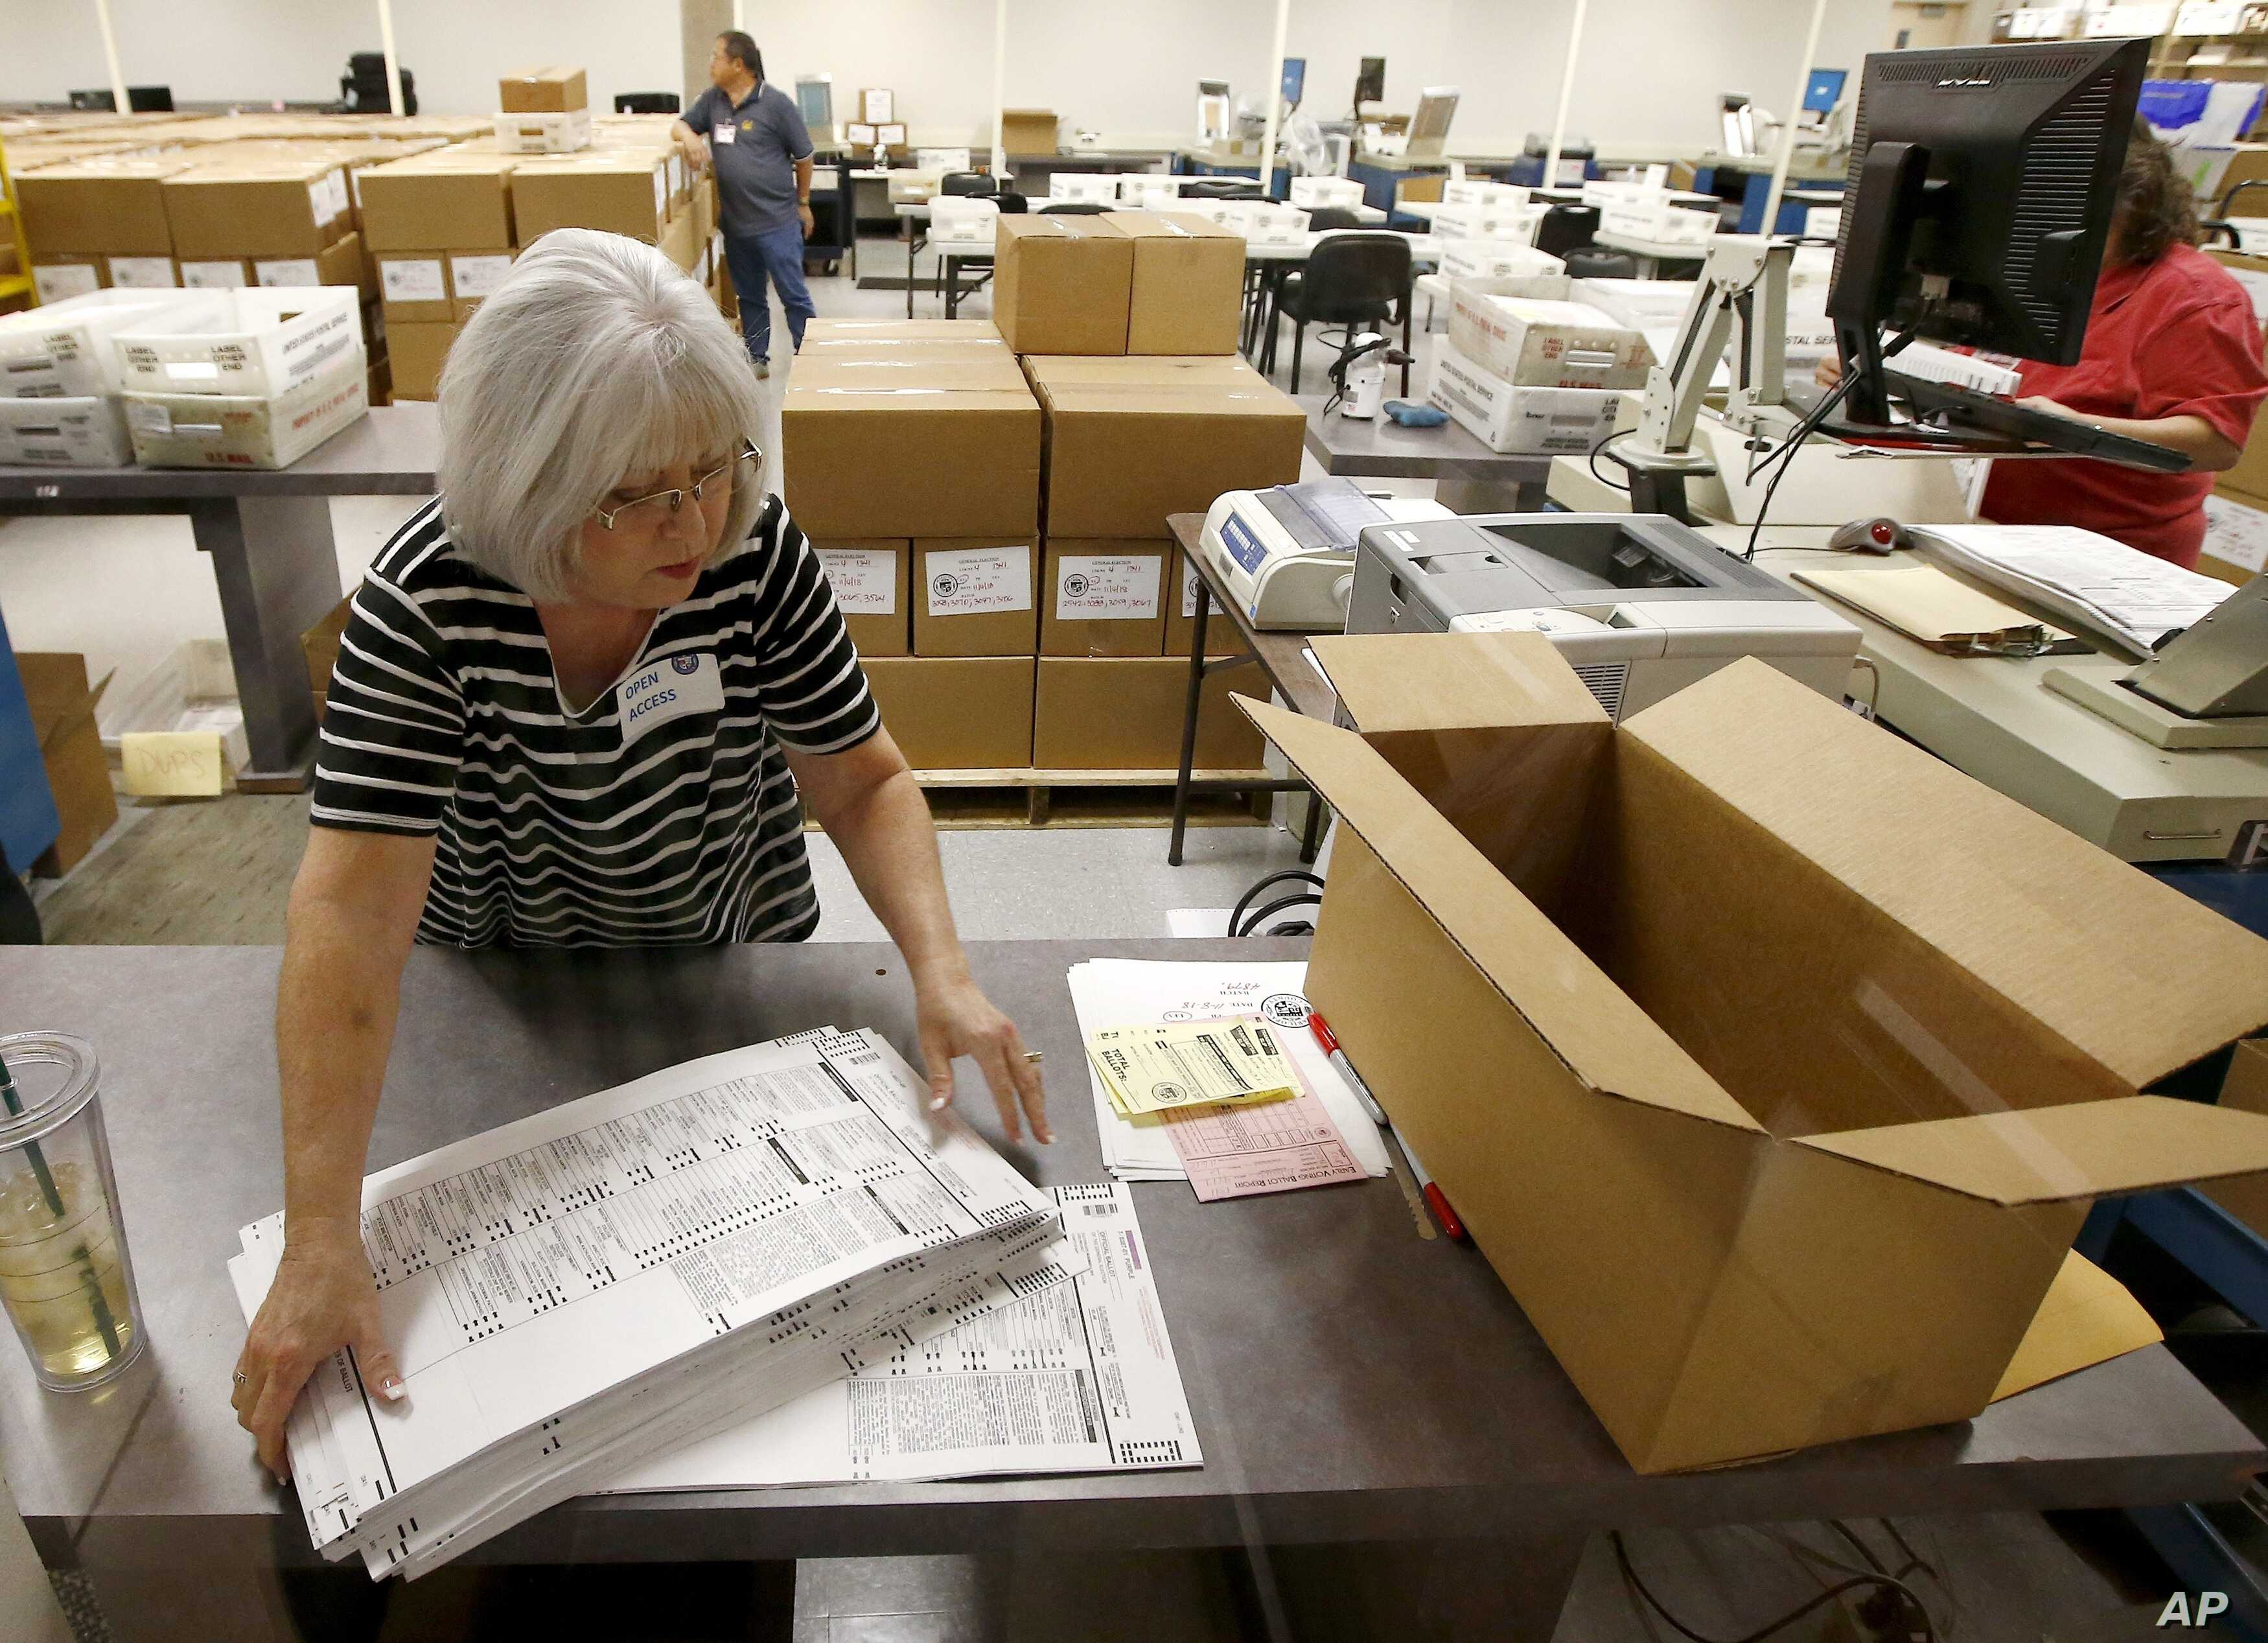 Workers at the Maricopa County recorder's office go through ballots  Nov. 8, 2018, in Phoenix. There are several races too close to call in Arizona, especially the Senate race between Democratic candidate Kyrsten Sinema and Republican candidate Marth...